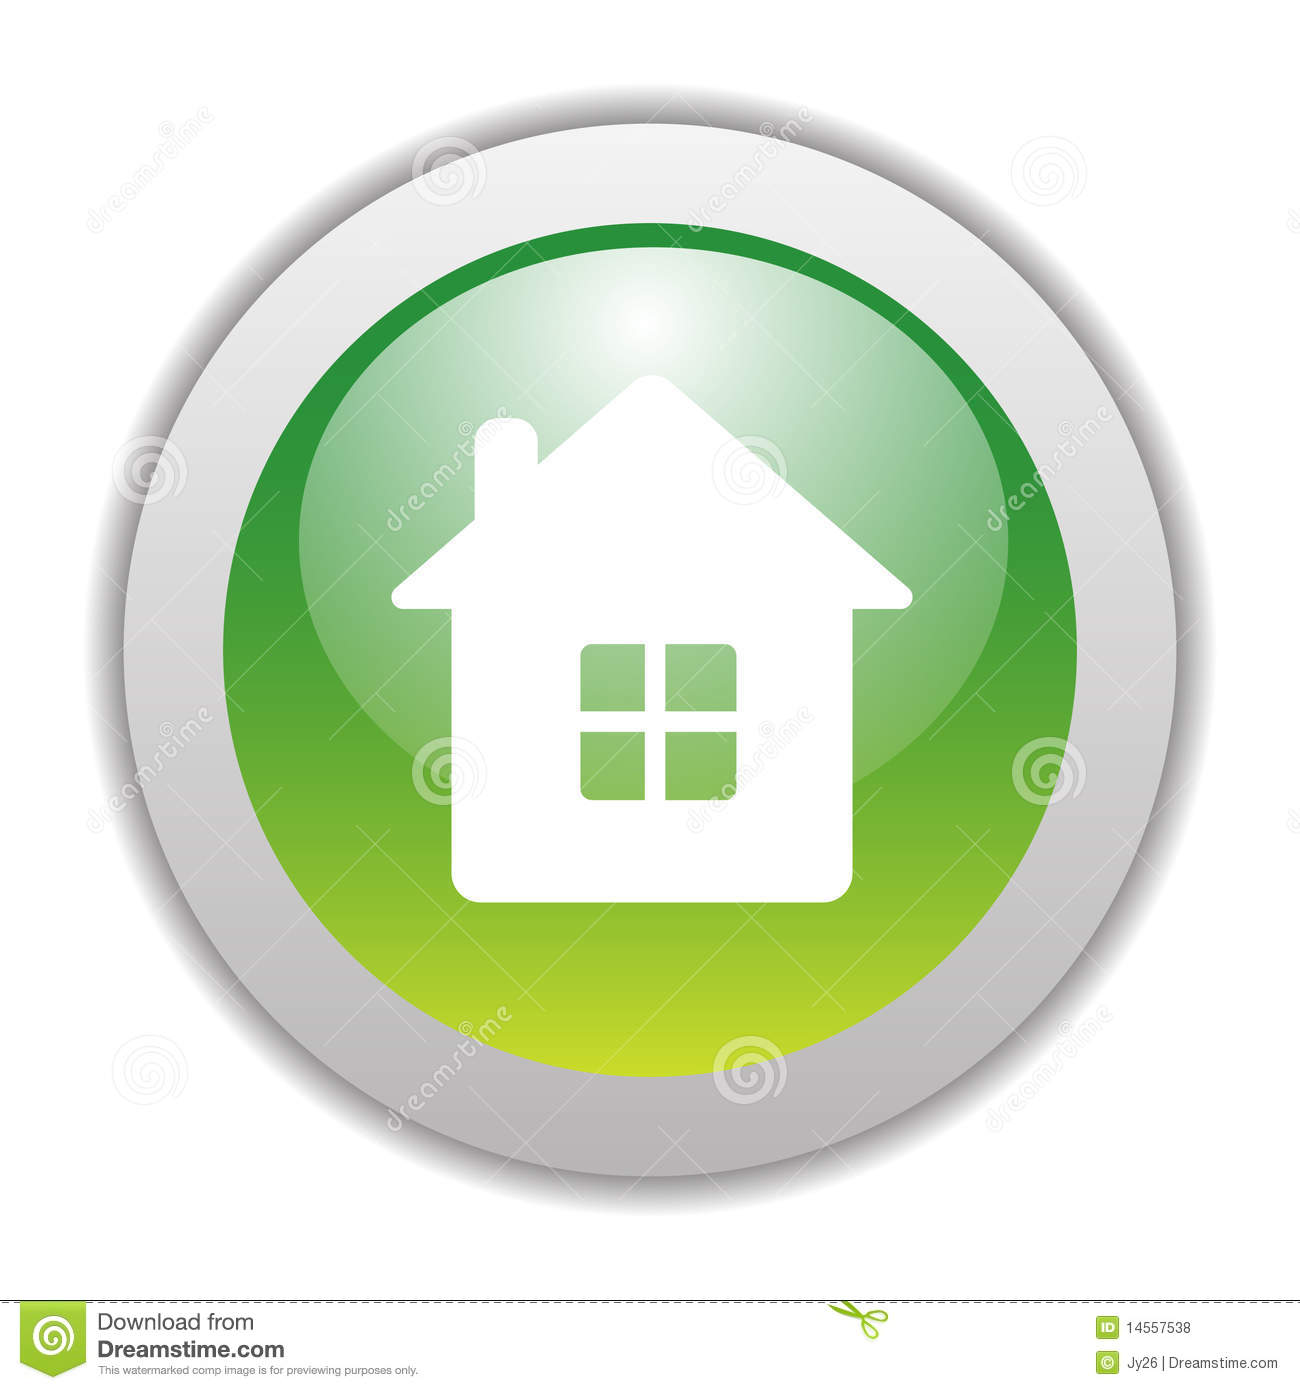 14 home button icon green images homepage icon free home button icon and green home icon newdesignfile com 14 home button icon green images homepage icon free home button icon and green home icon newdesignfile com